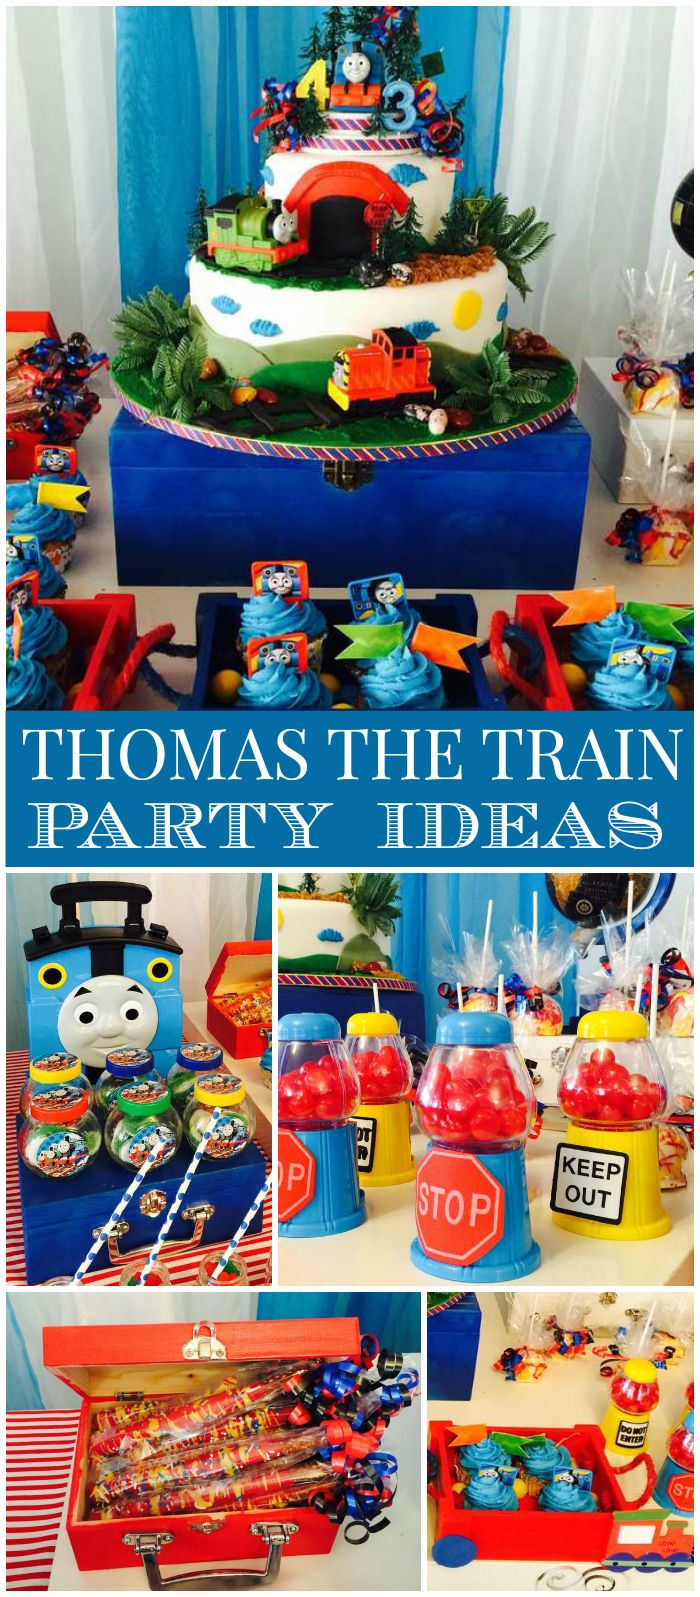 Check out this Thomas the Train party!  It has gumball machine favors and candy pretzels! See more party planning ideas at CatchMyParty.com!